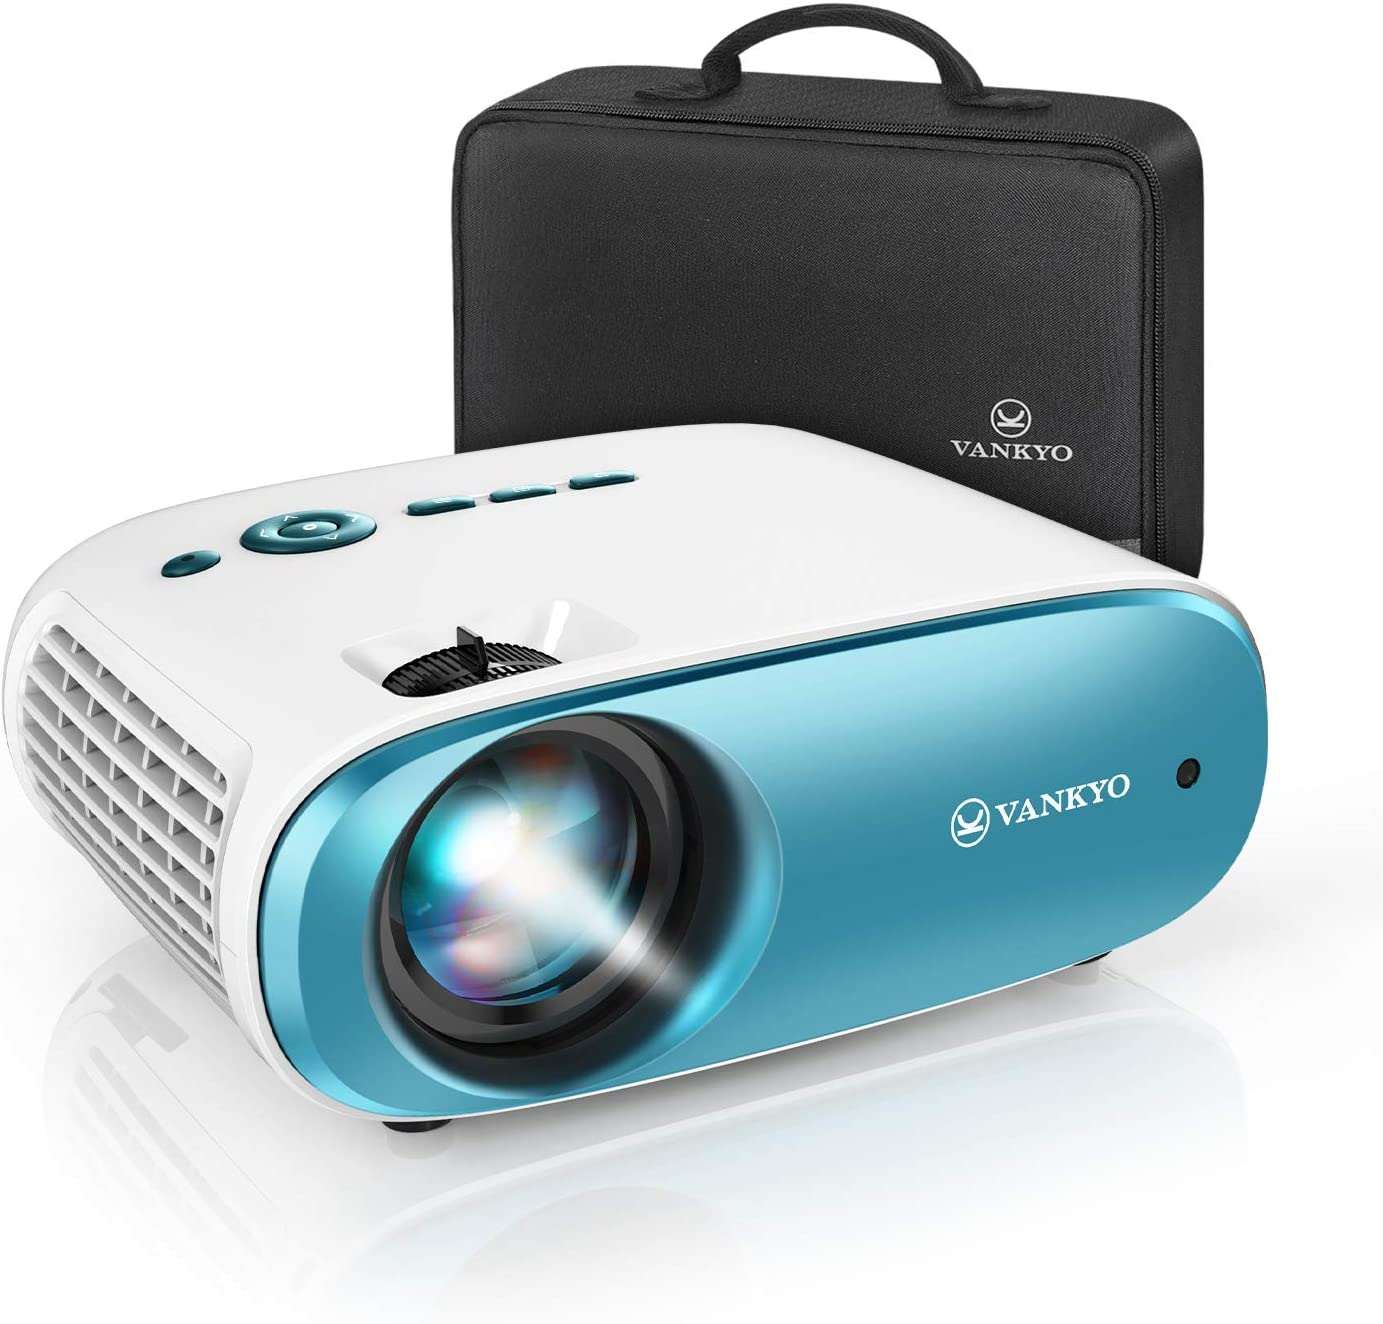 "VANKYO Cinemango 100 Mini Video Projector, 3800 Lux HD Movie Projector Support 1080P, 220"" Display, 50,000 Hrs Lamp Life, Compatible with TV Stick, HDMIx2, USBx2, VGA, TF, AV for Home Entertainment"